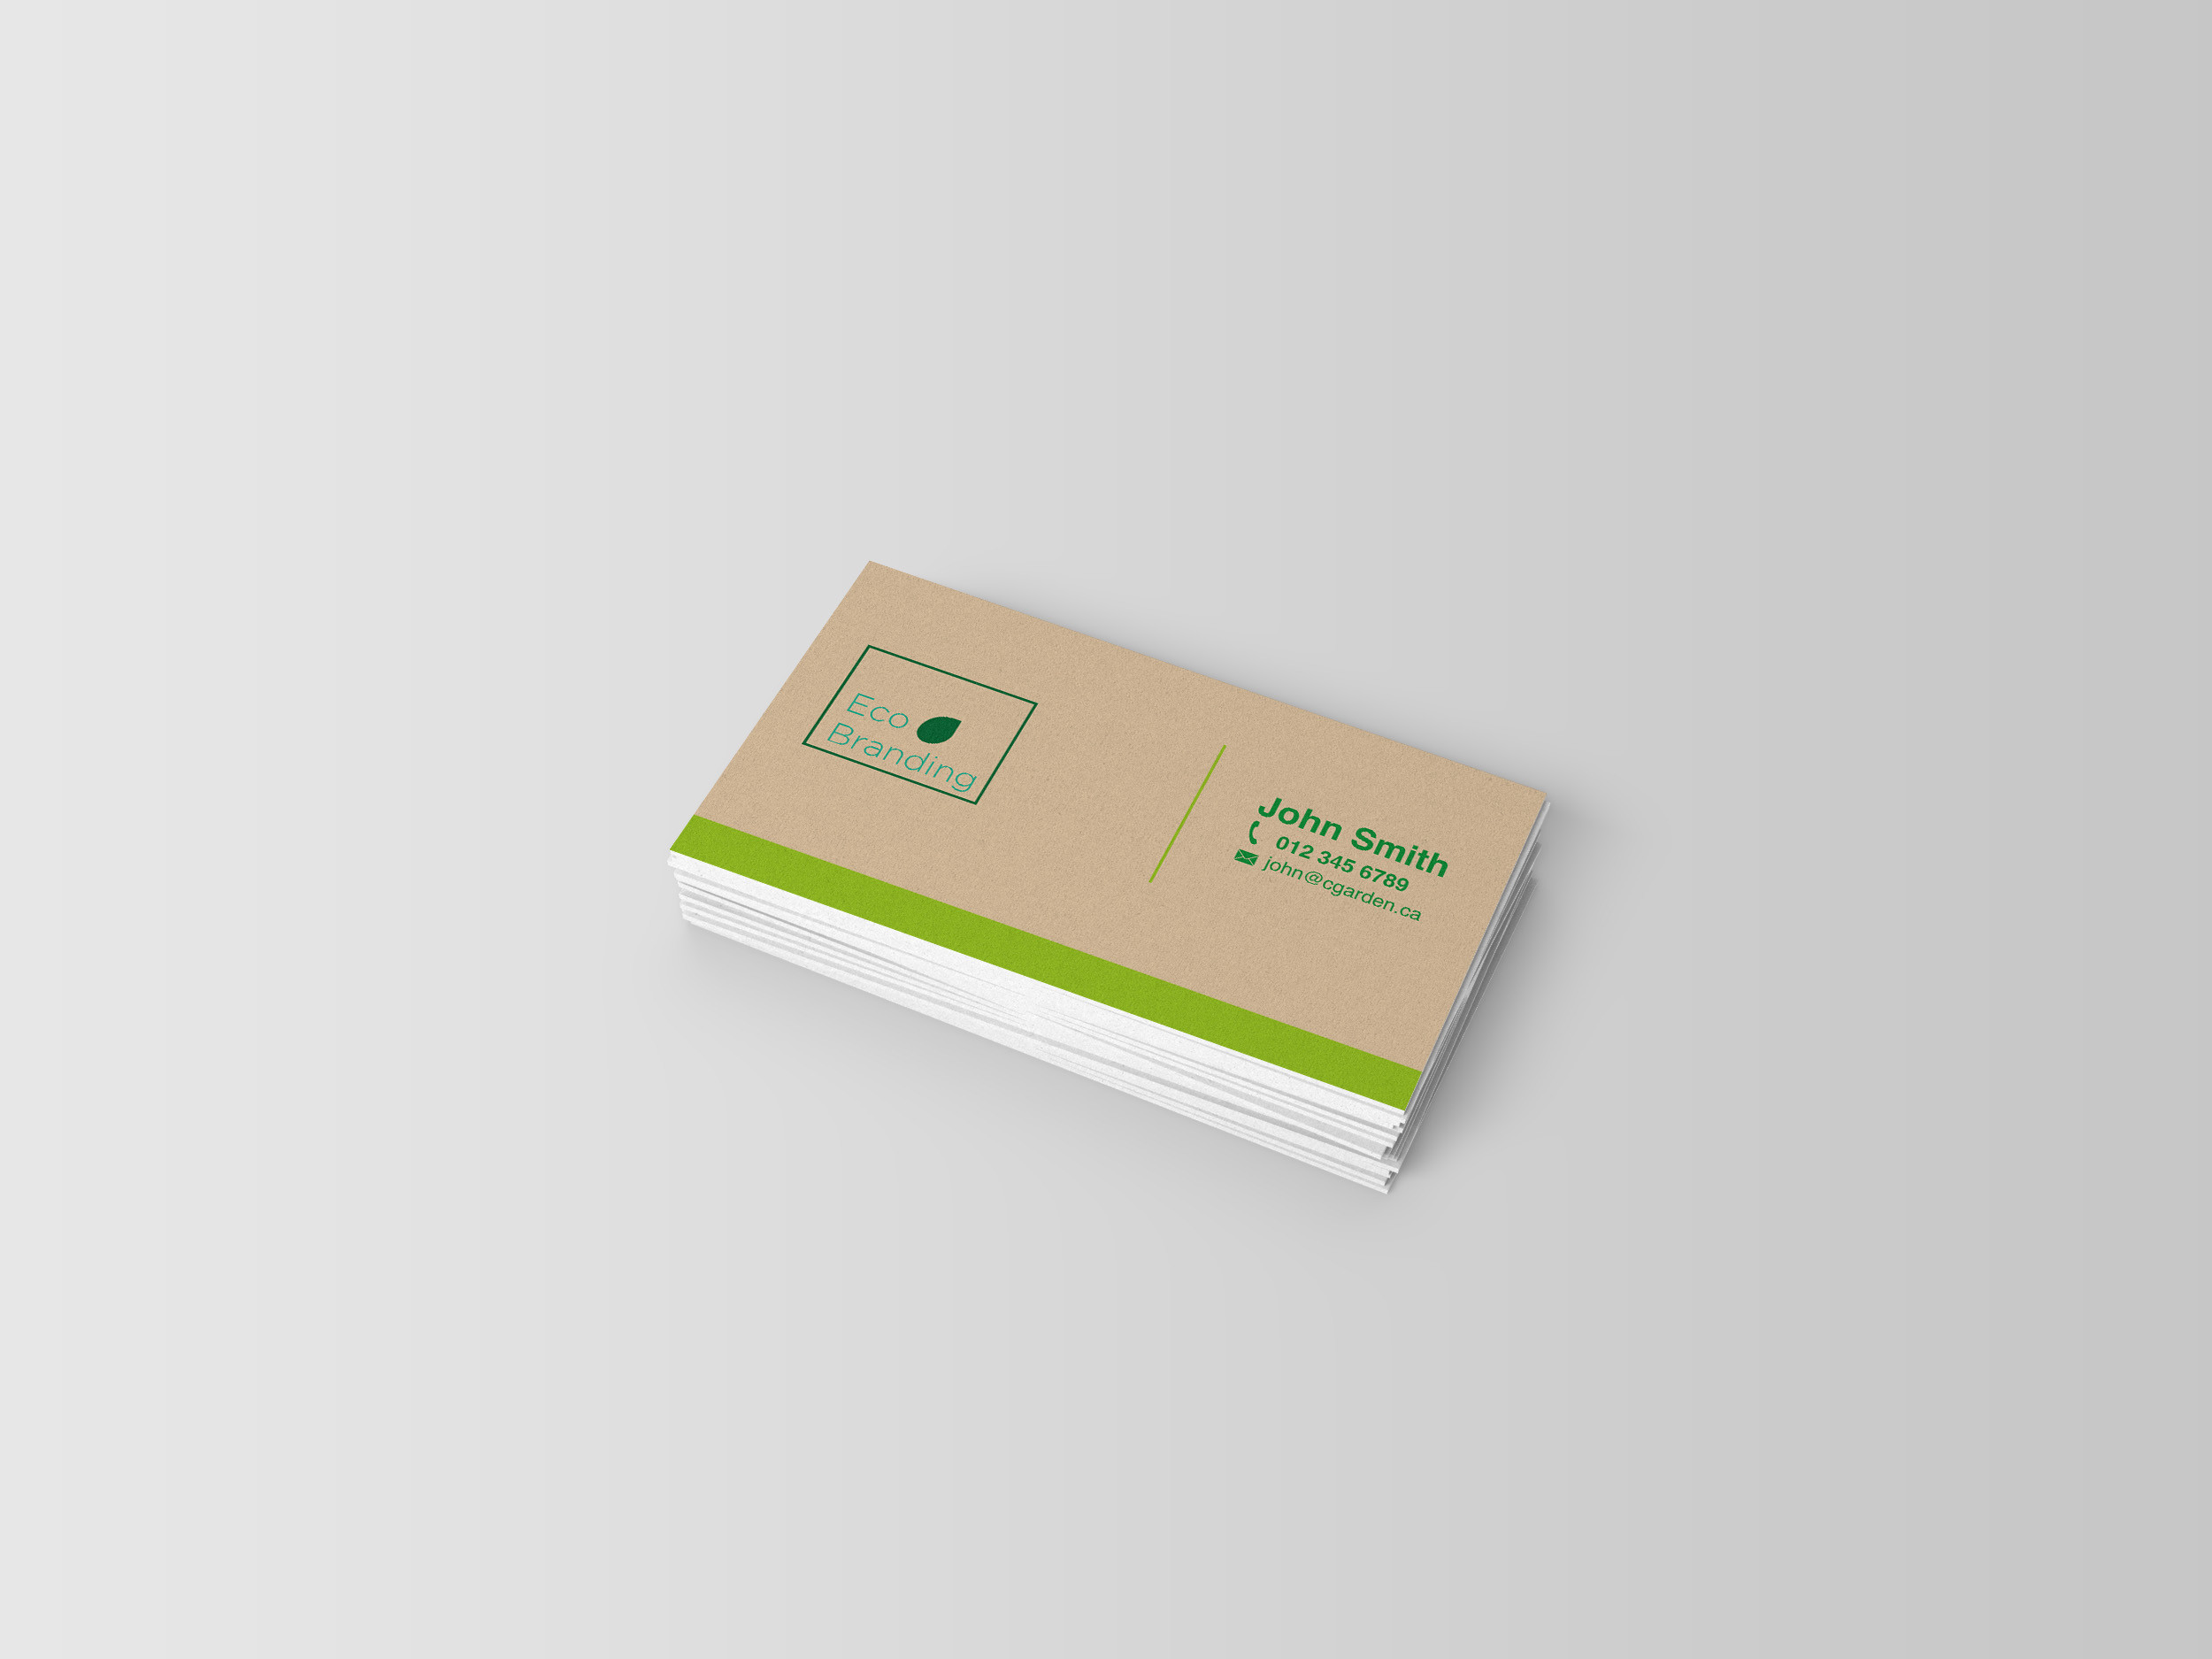 100% Recycled Business Cards - 80lb Uncoated Cover